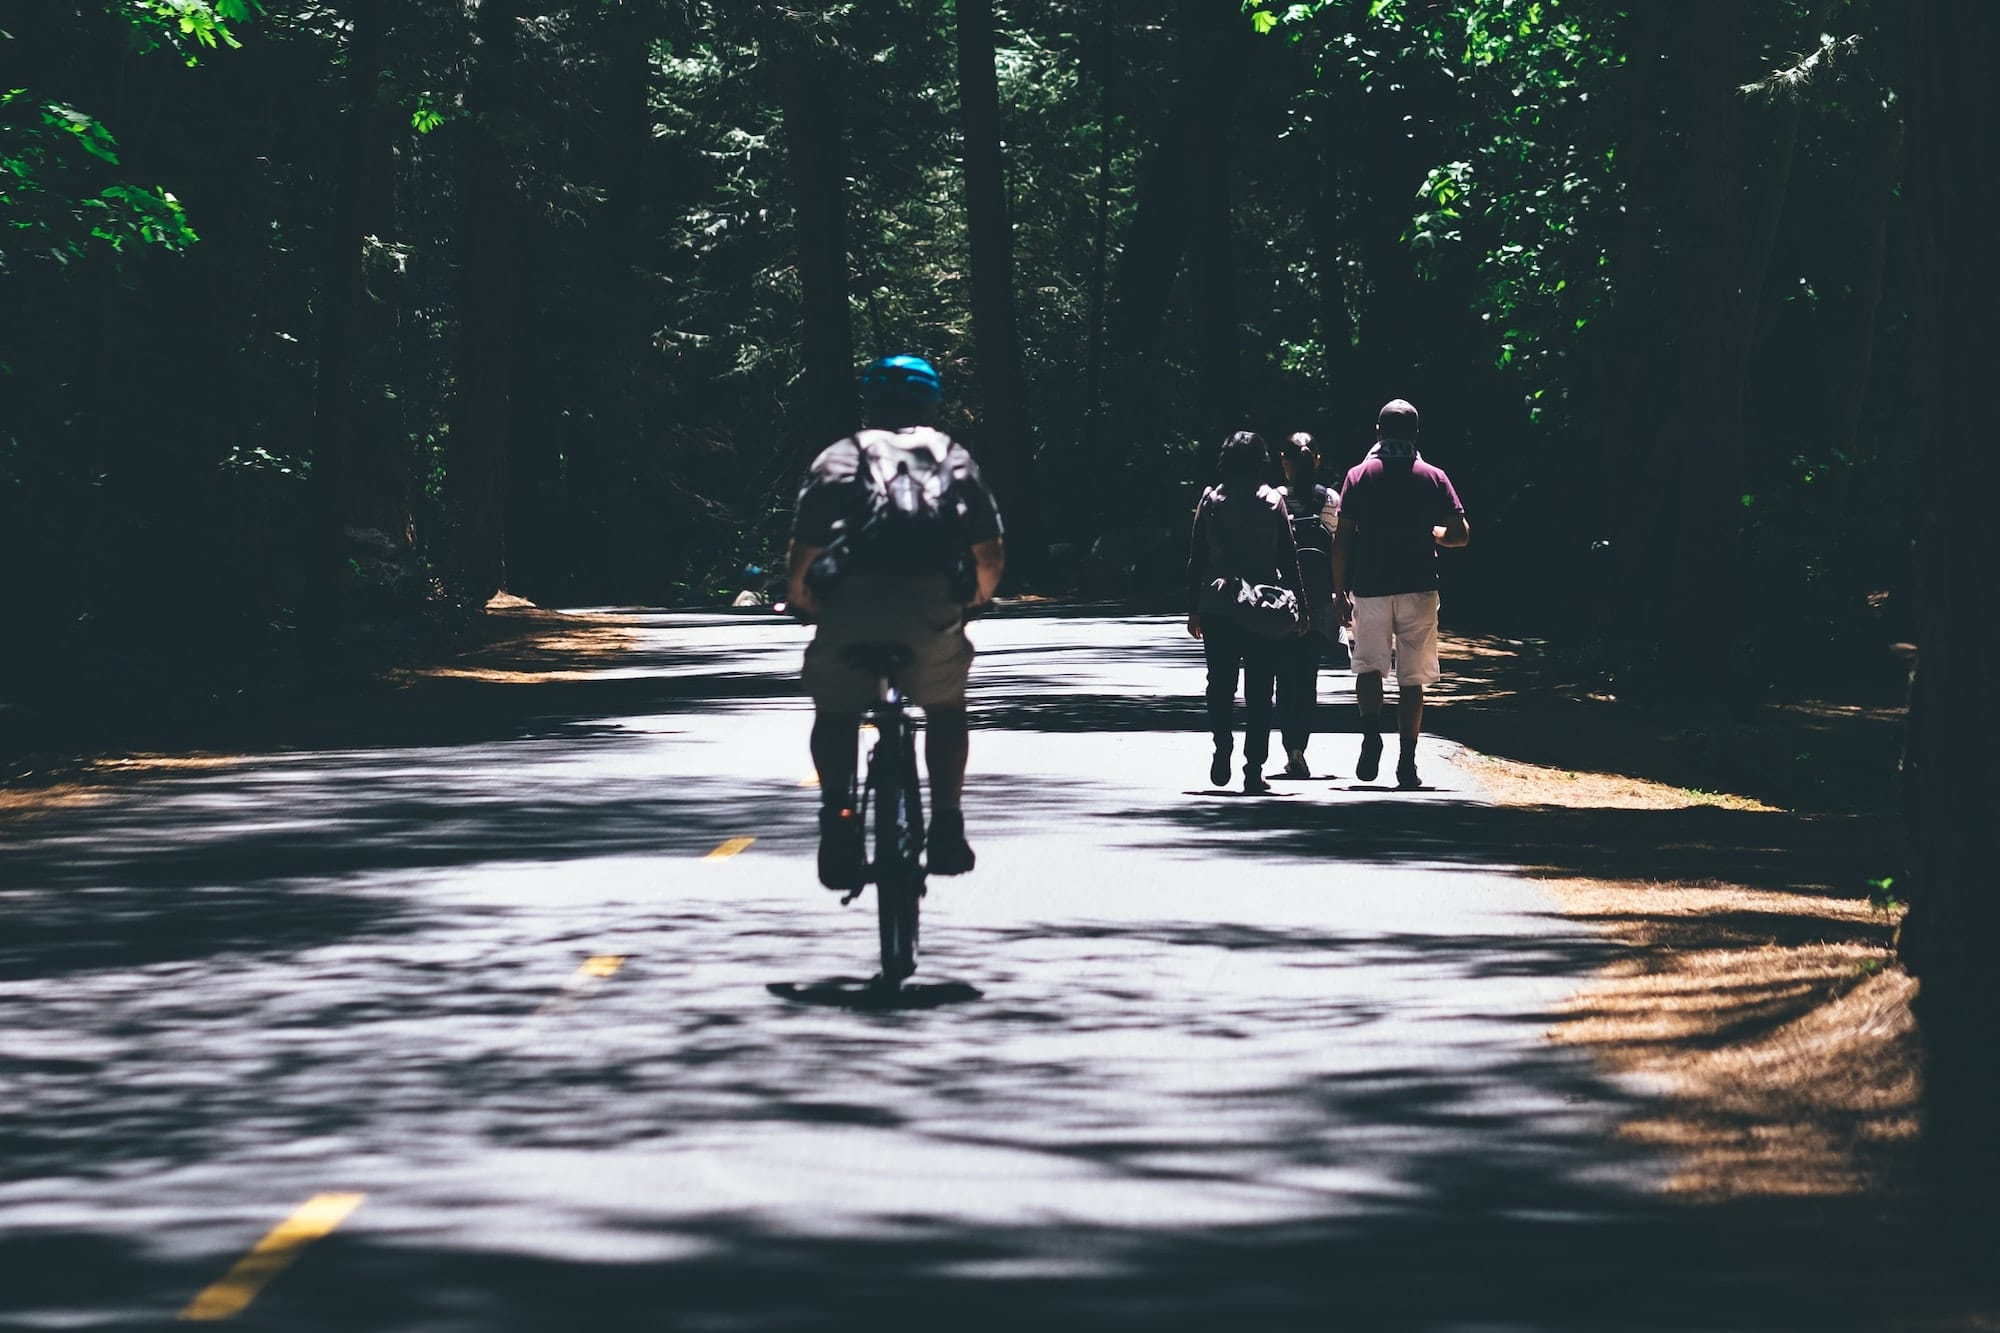 is cycling good for weight loss?